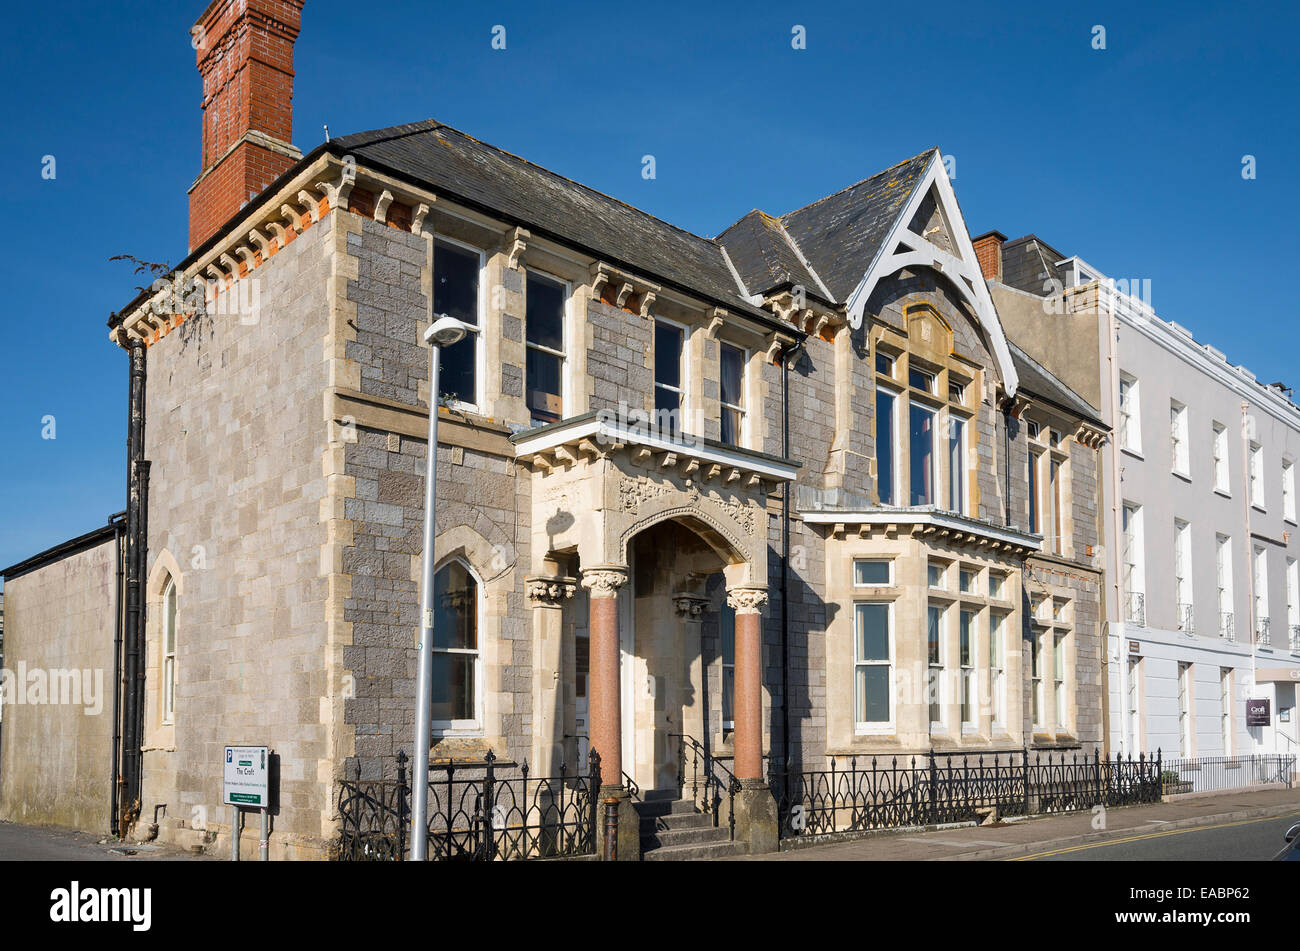 Premises of the Tenby and County Club on the seafront in Tenby UK - Stock Image